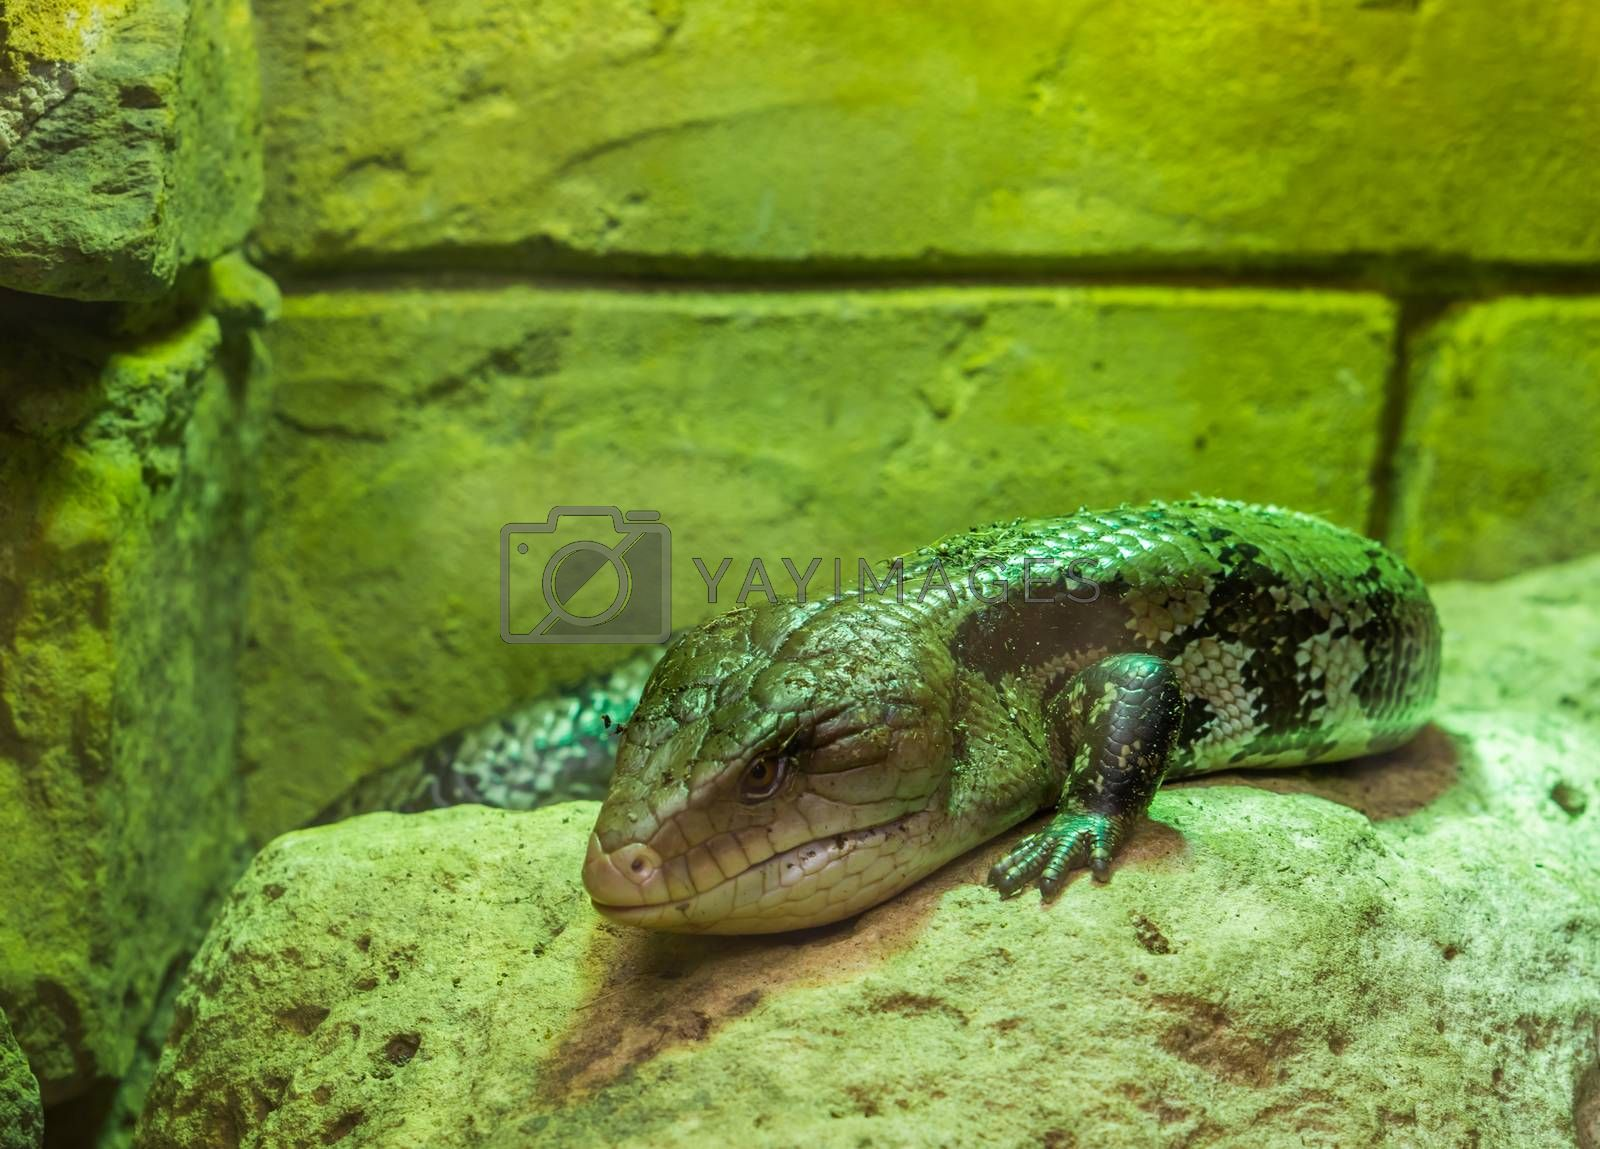 closeup of a common blue tongued skink, tropical lizard from Indonesia, popular reptile pet in herpetoculture